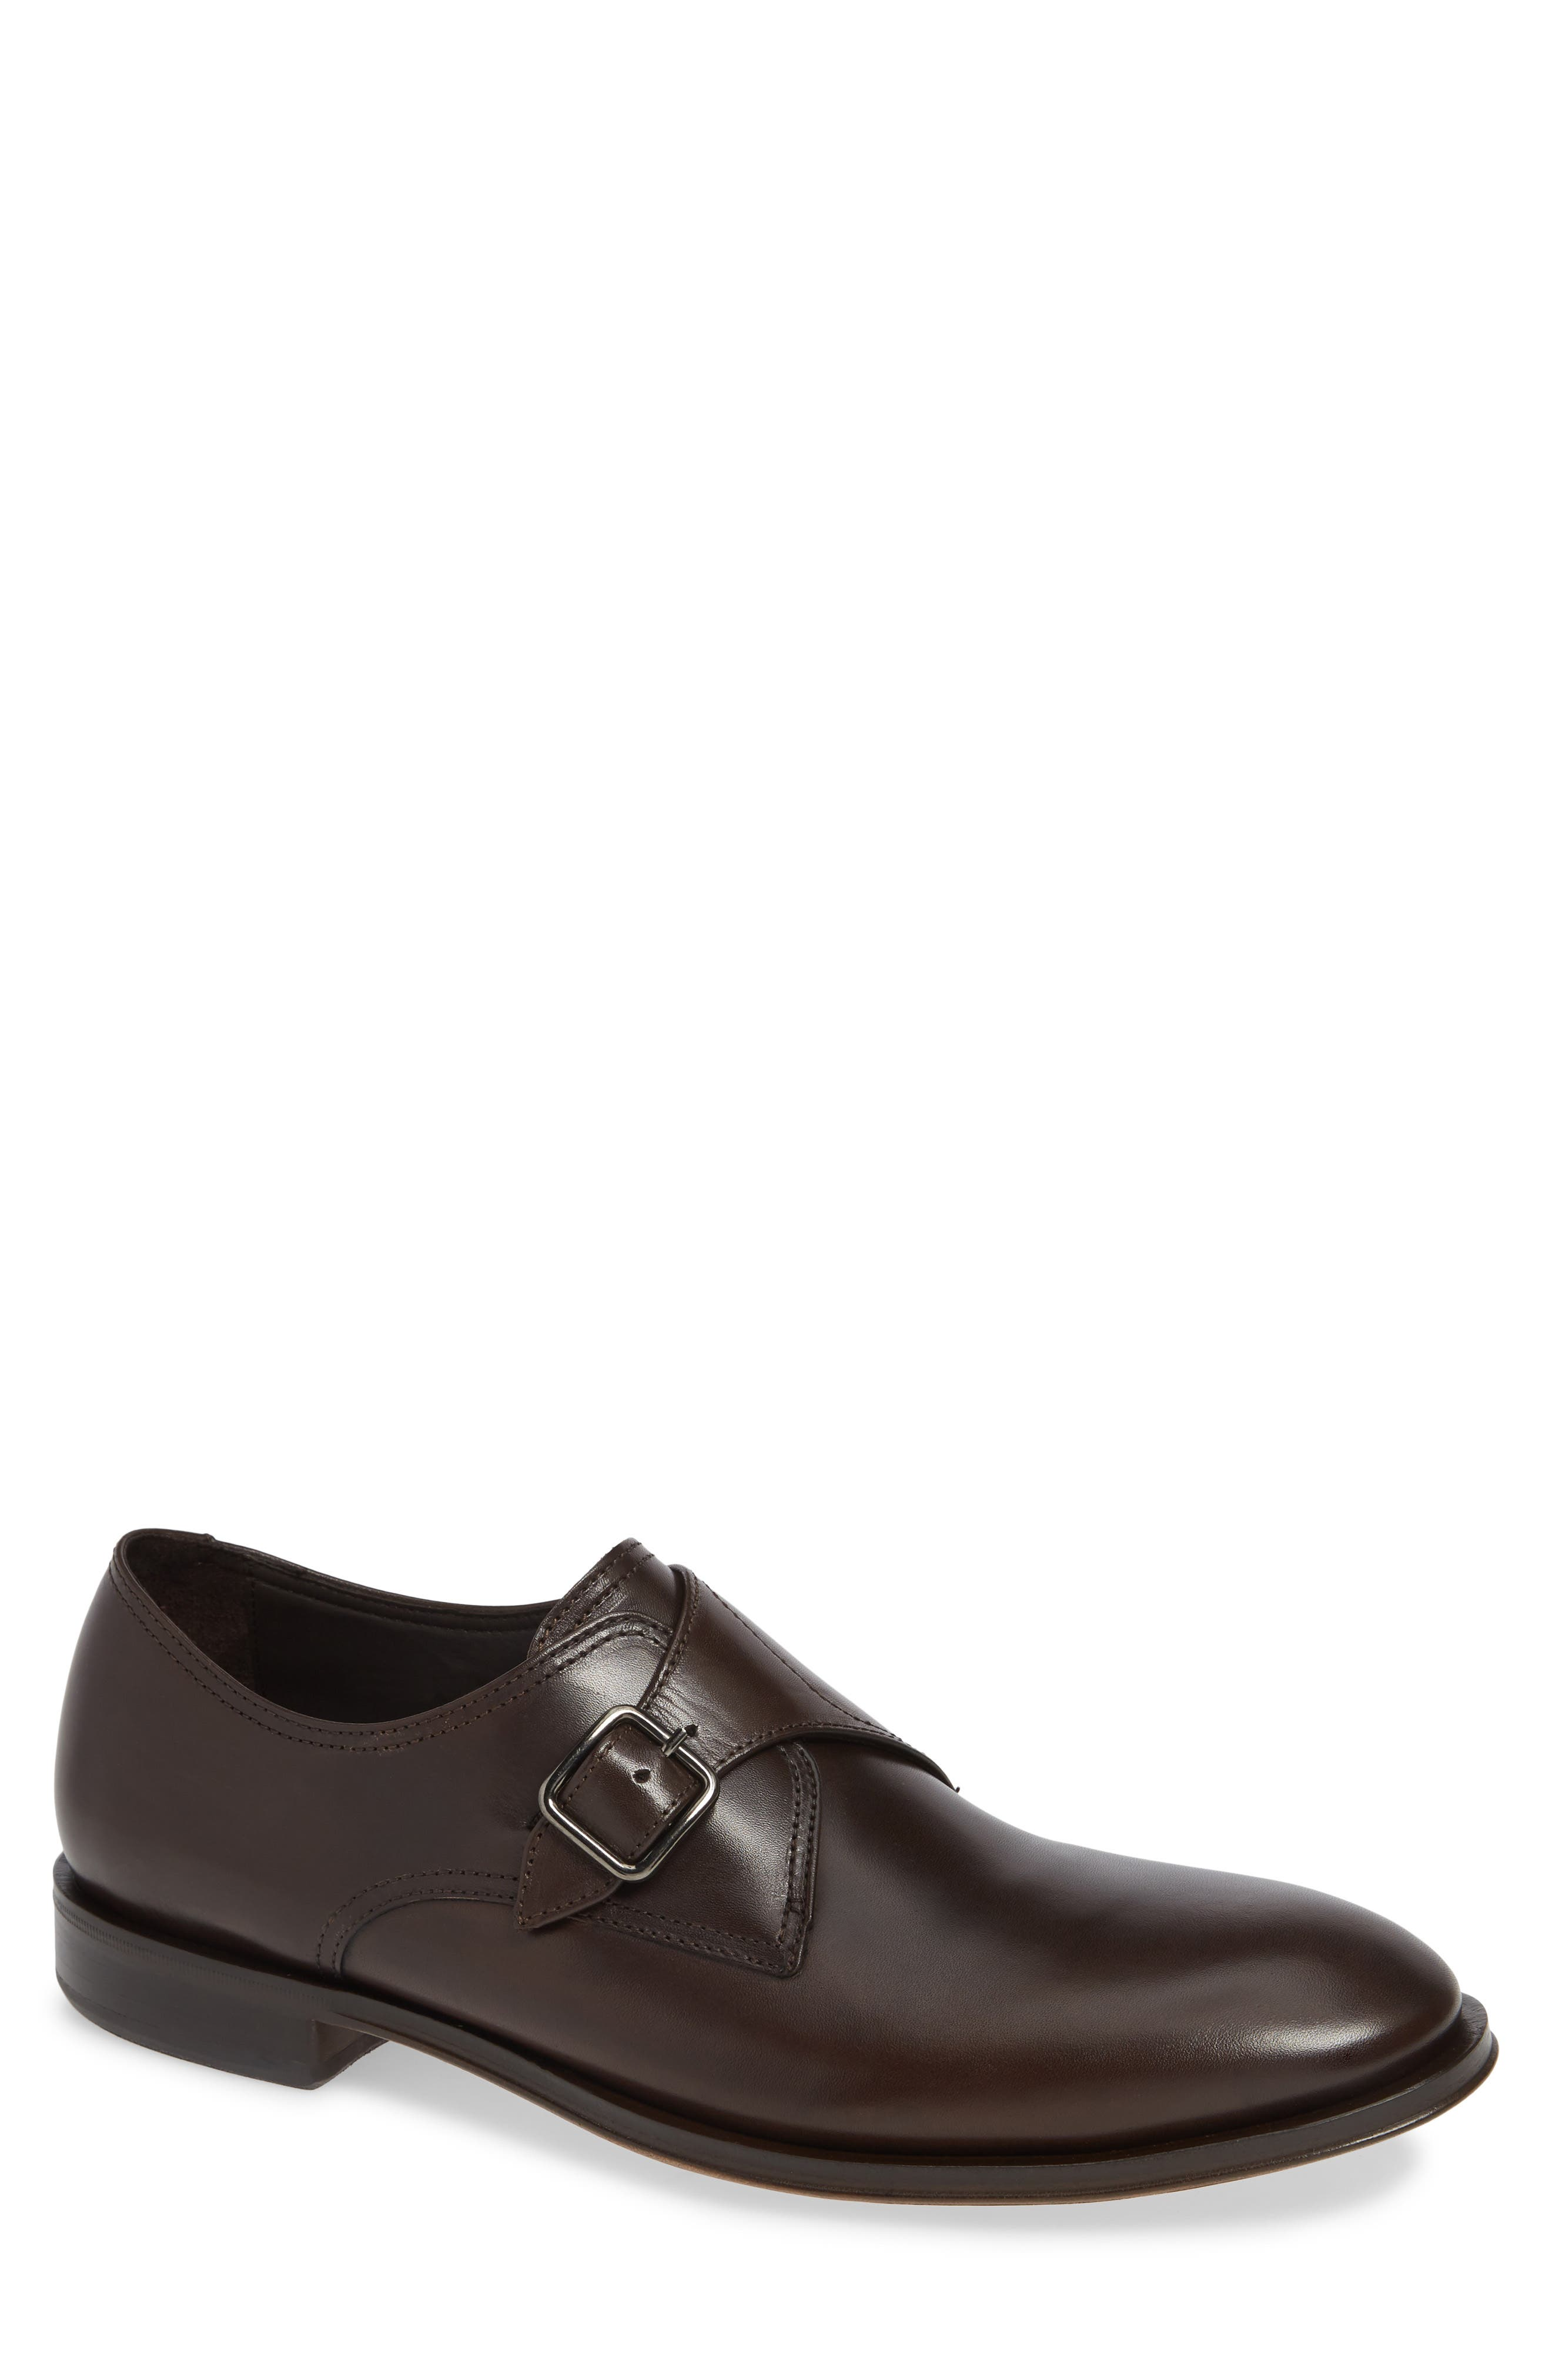 ALLEN EDMONDS Umbria Monk Strap Shoe, Main, color, DARK BROWN LEATHER